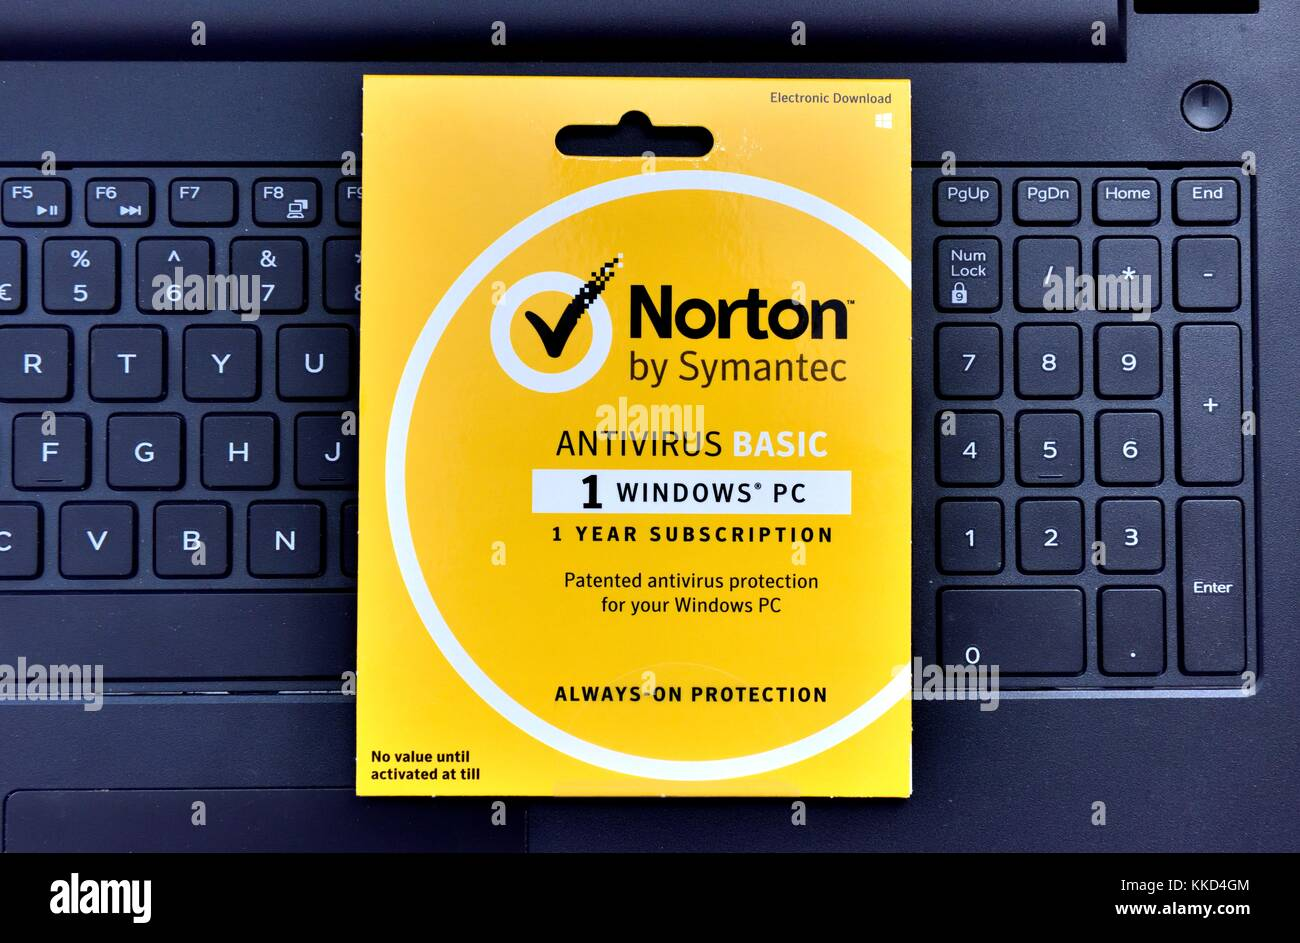 Norton antivirus basic download pack - Stock Image